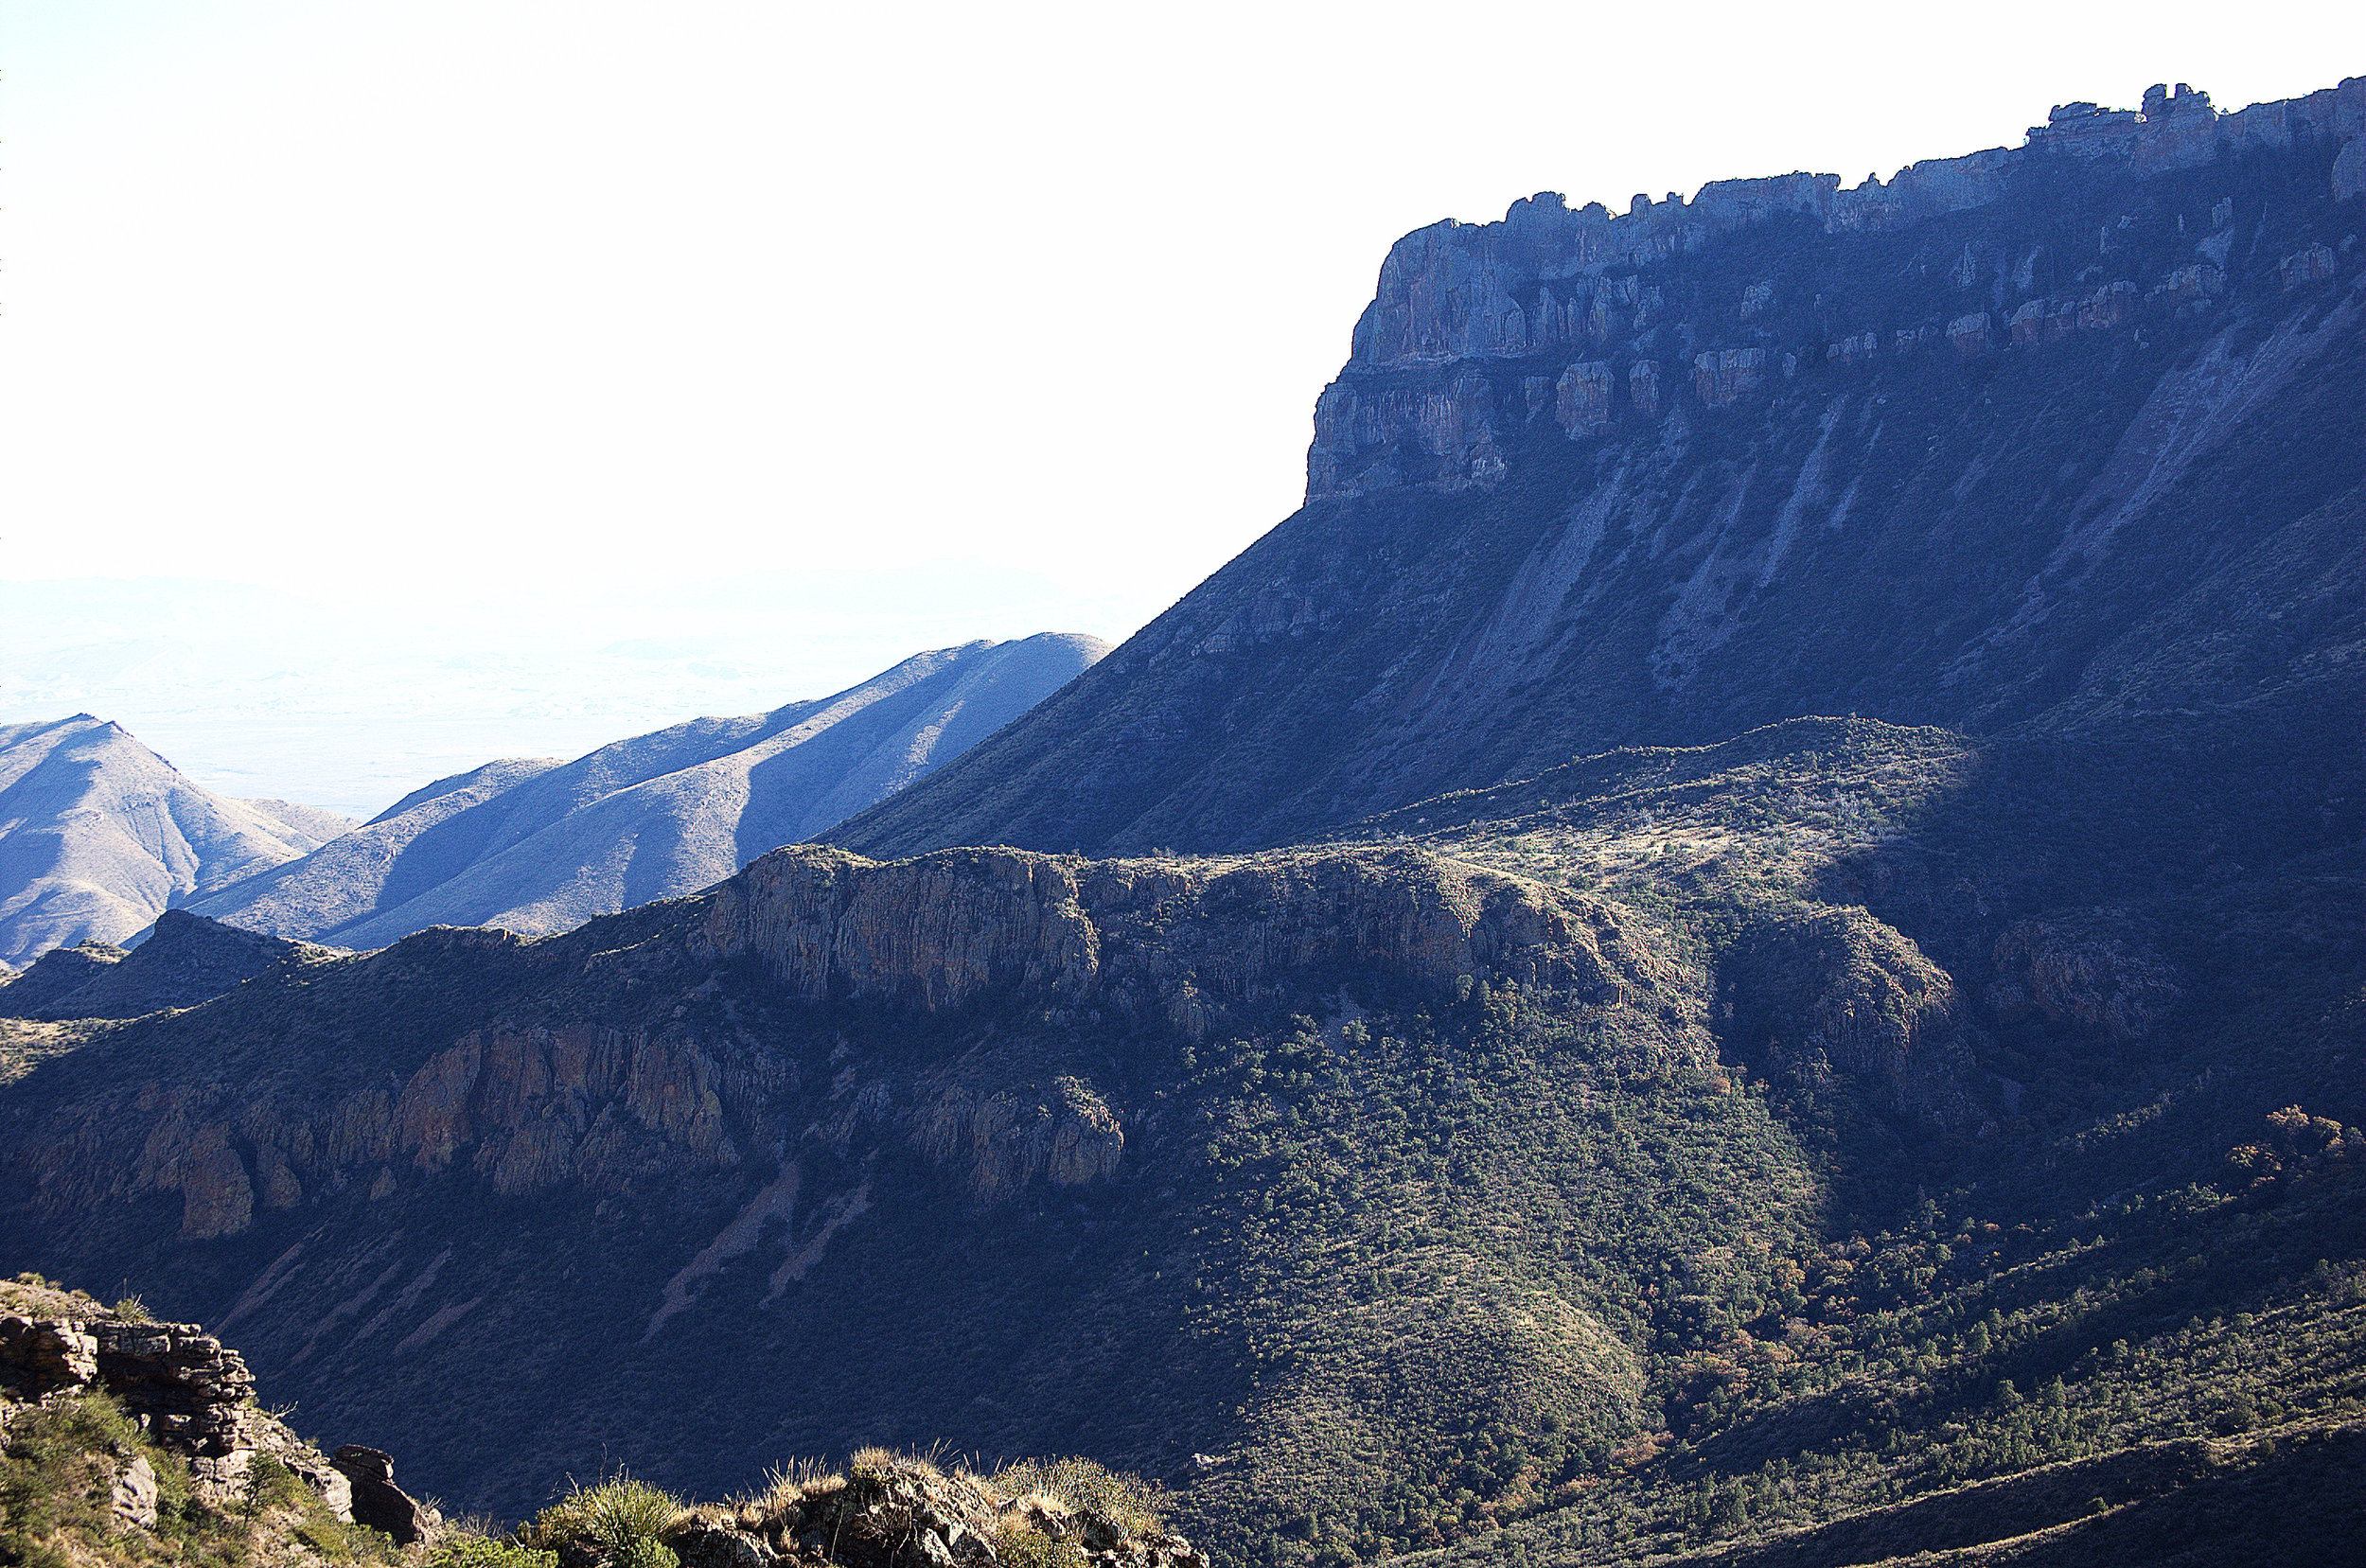 Northeast Rim above Juniper Canyon, Chisos Mountains